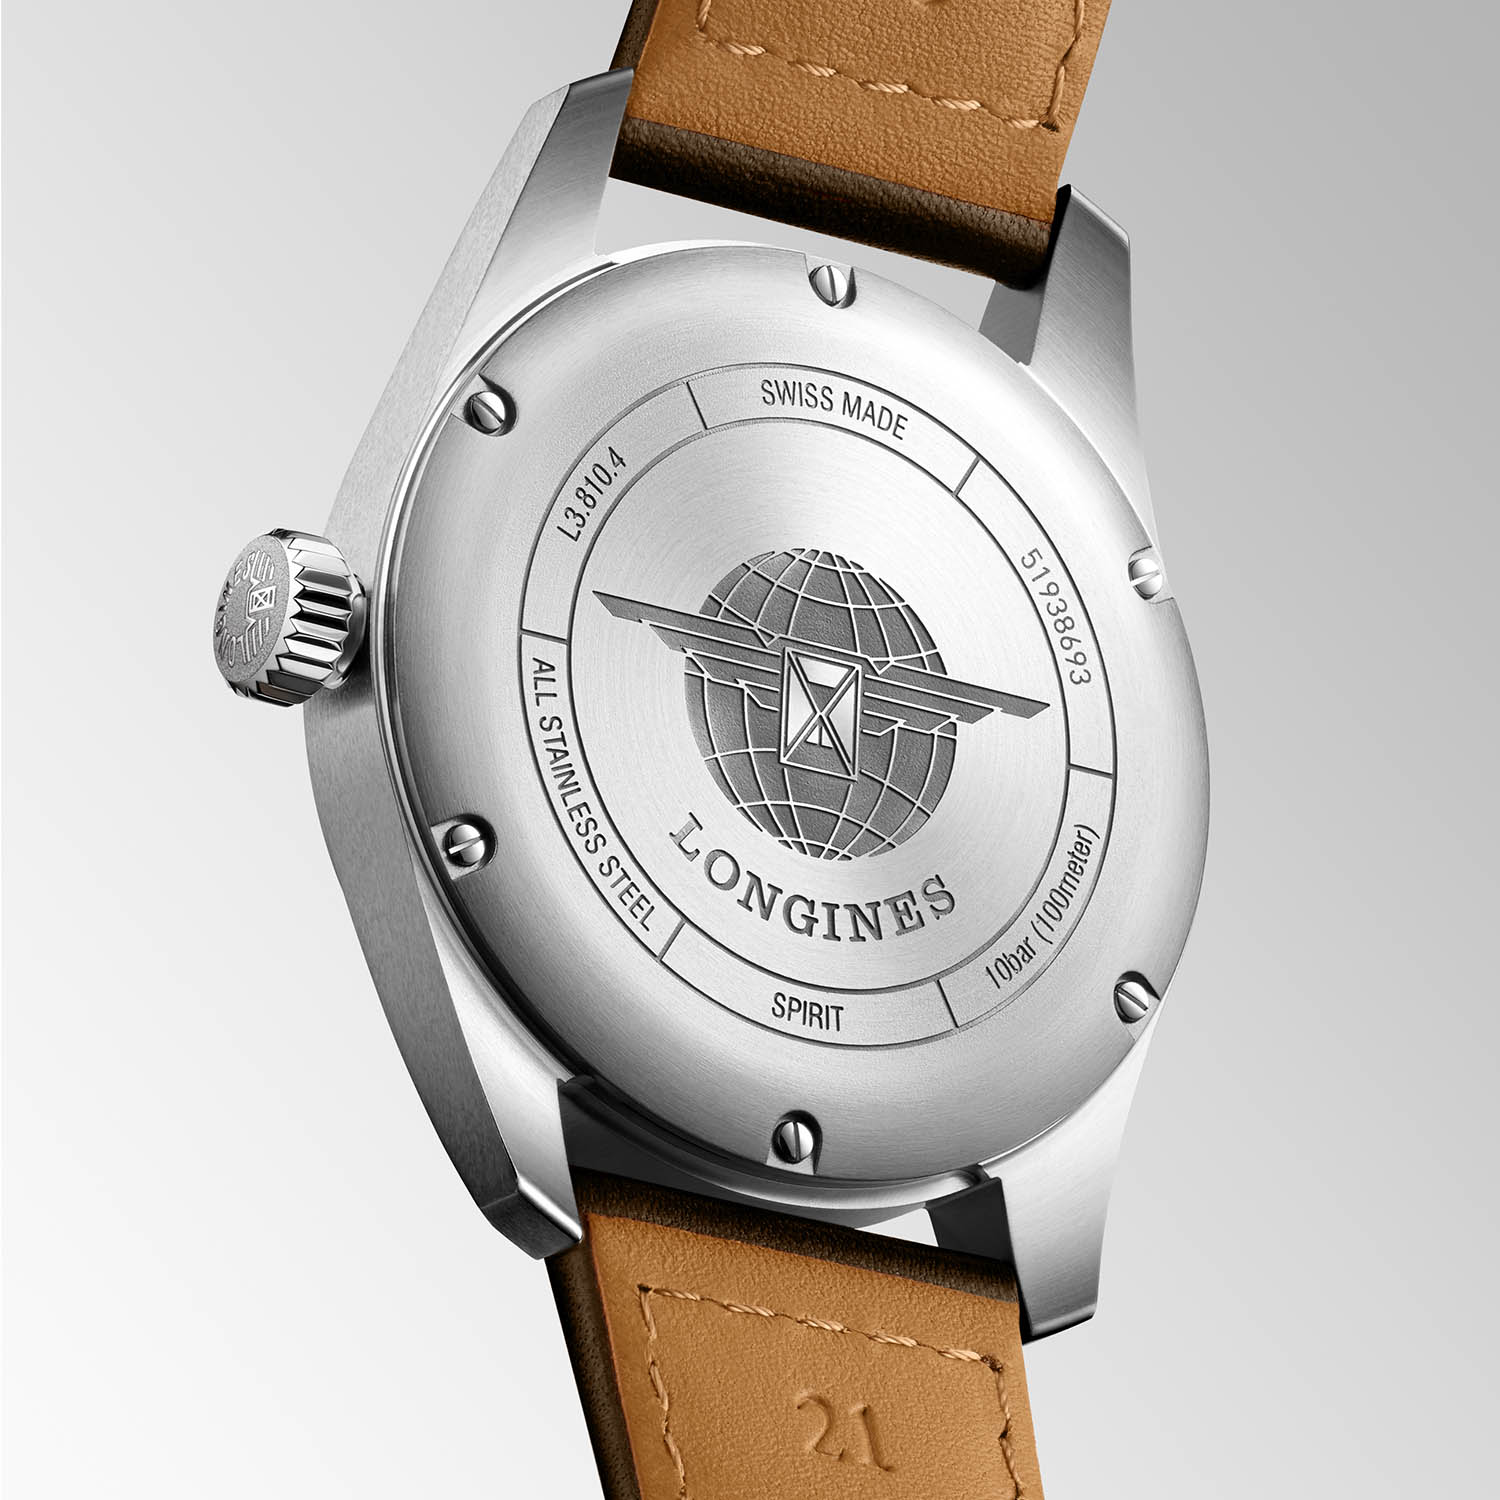 2020 Longines Spirit Time-and-Date - 6